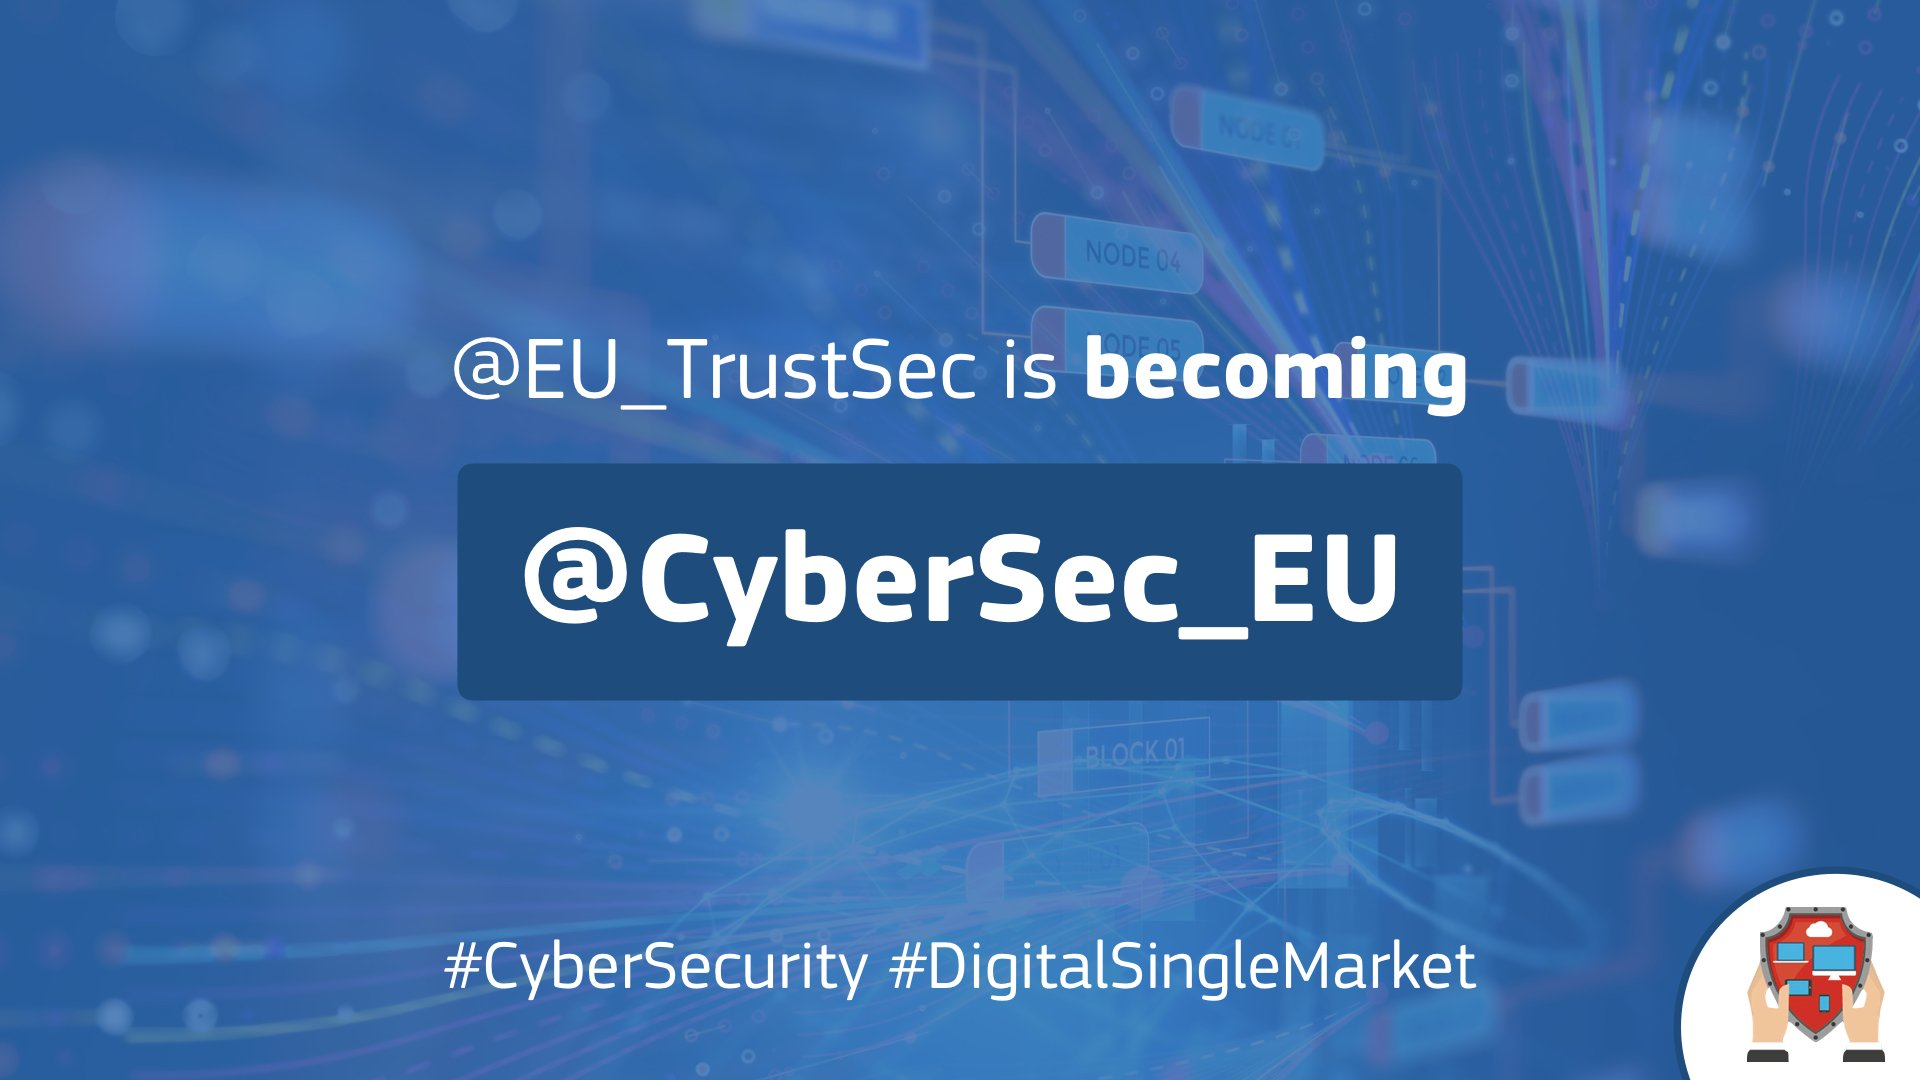 Our handle is now @Cybersec_EU ; so much going on in #cybersecurity we are rebranding our twitter presence ; keep following us for the latest in policy, research and innovation in #cybersecurity/#infosec in the #EU. Also digital #privacy/#ePrivacy. https://t.co/JASHLbRsiN